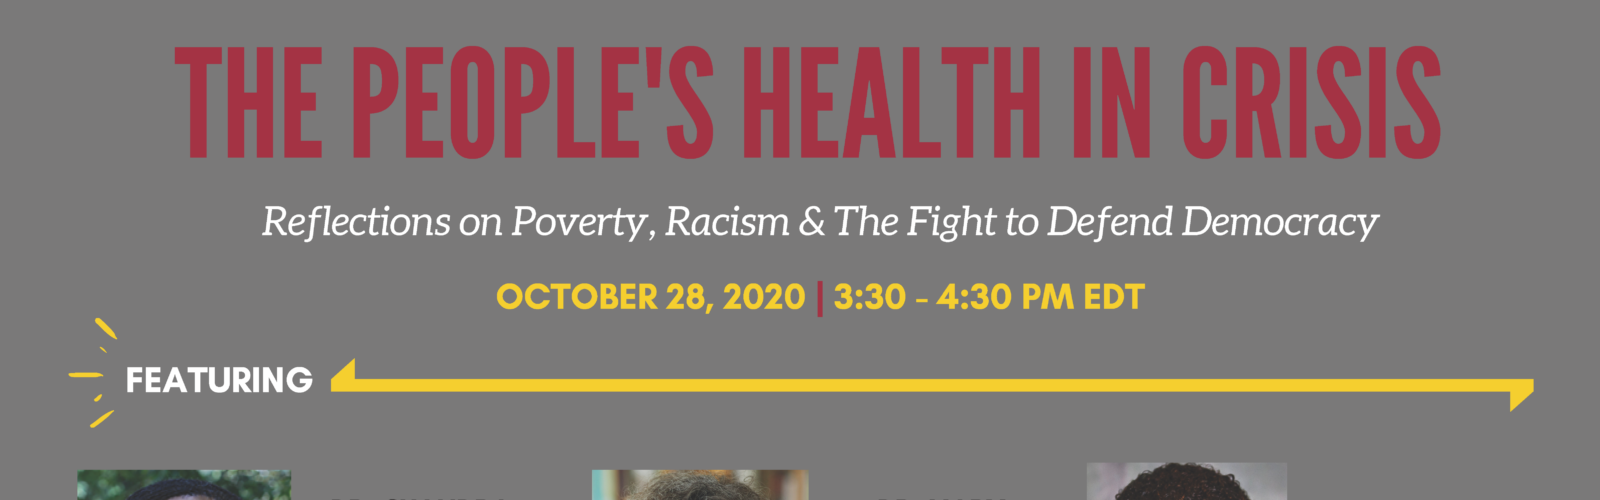 The People's Health In Crisis: Reflections on Poverty, Racism, and the Fight to Defend Democracy